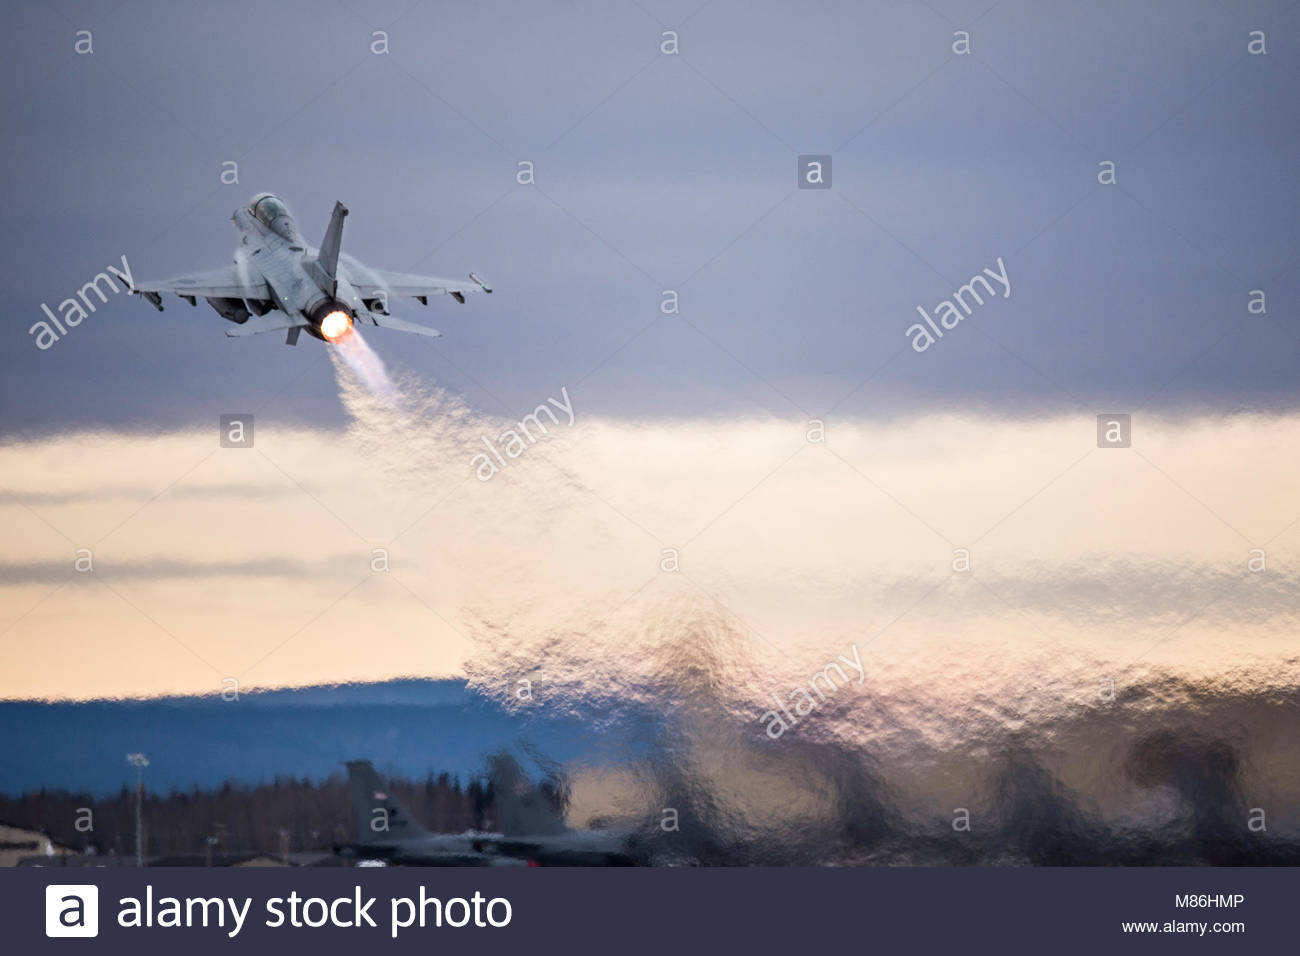 A Republic of Korea Air Force F-16 Fighting Falcon fighter aircraft takes off for a sortie from Eielson Air Force Stock Photo